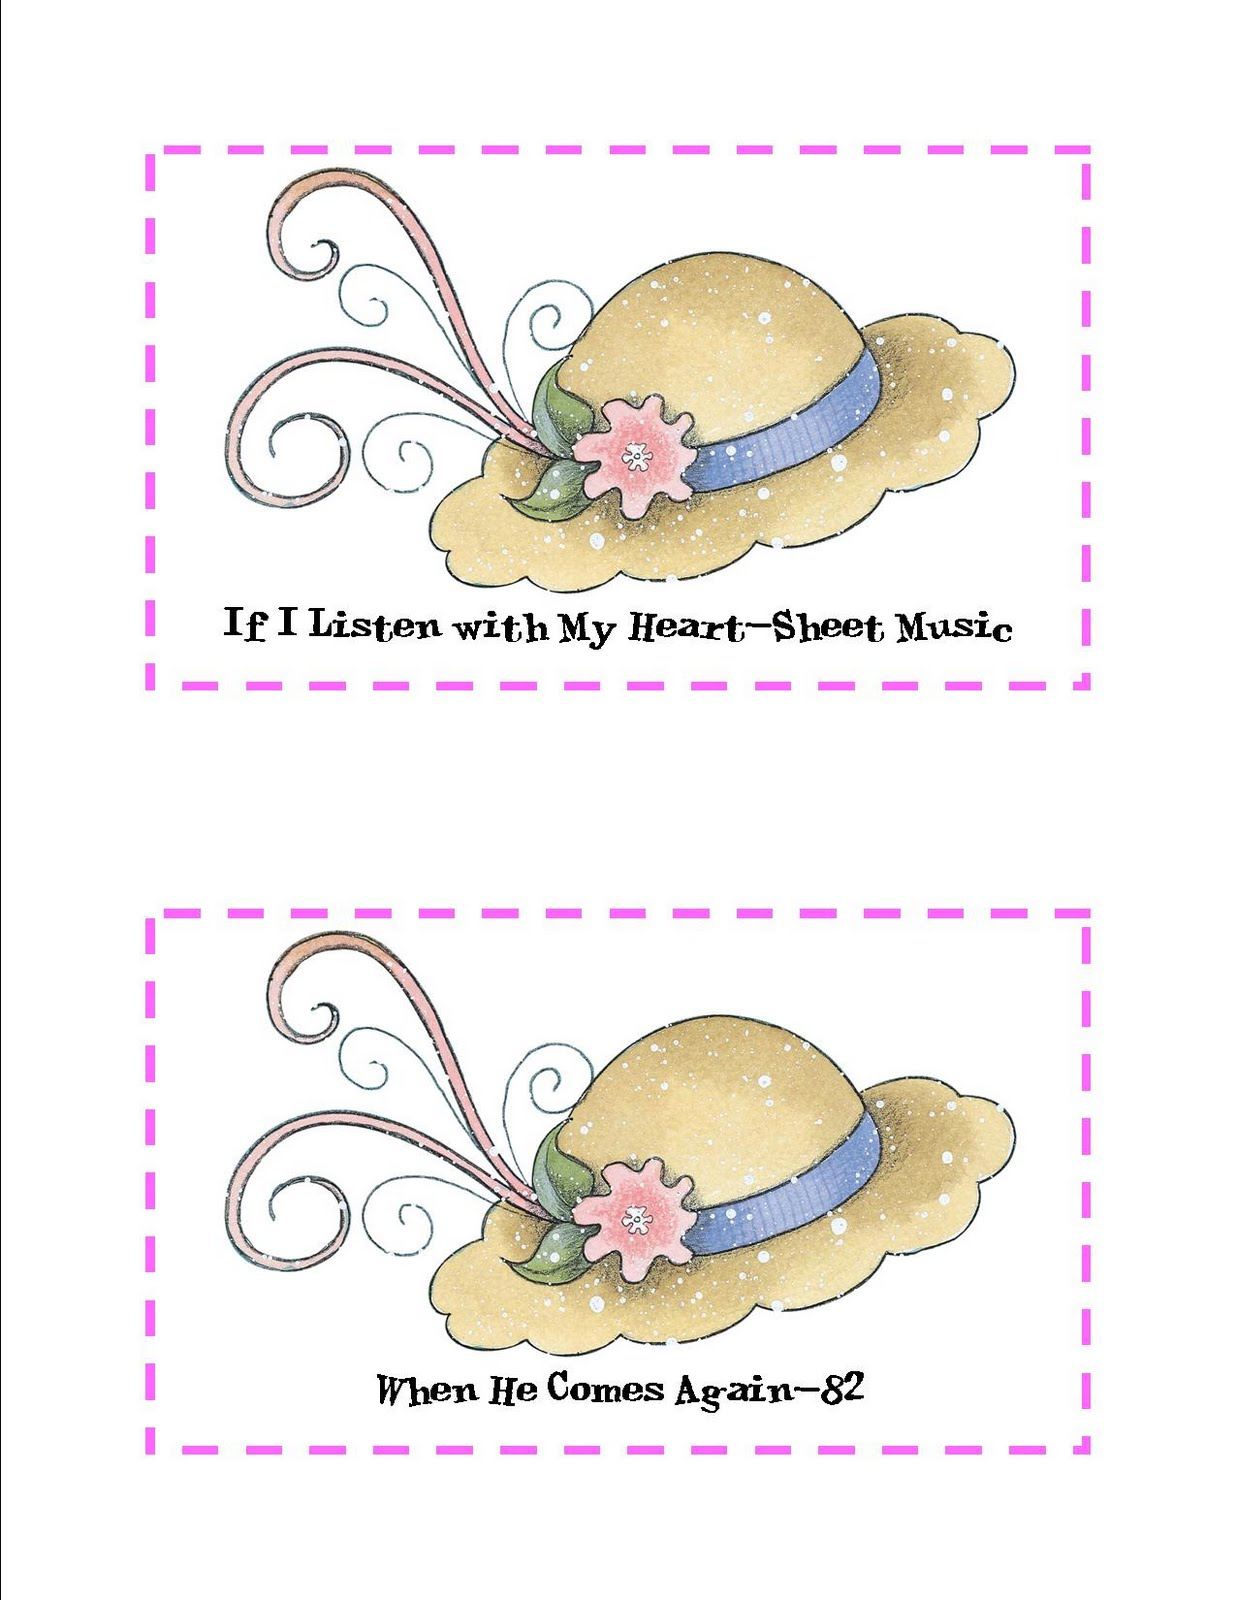 coloring pages easter bonnet song - photo#11